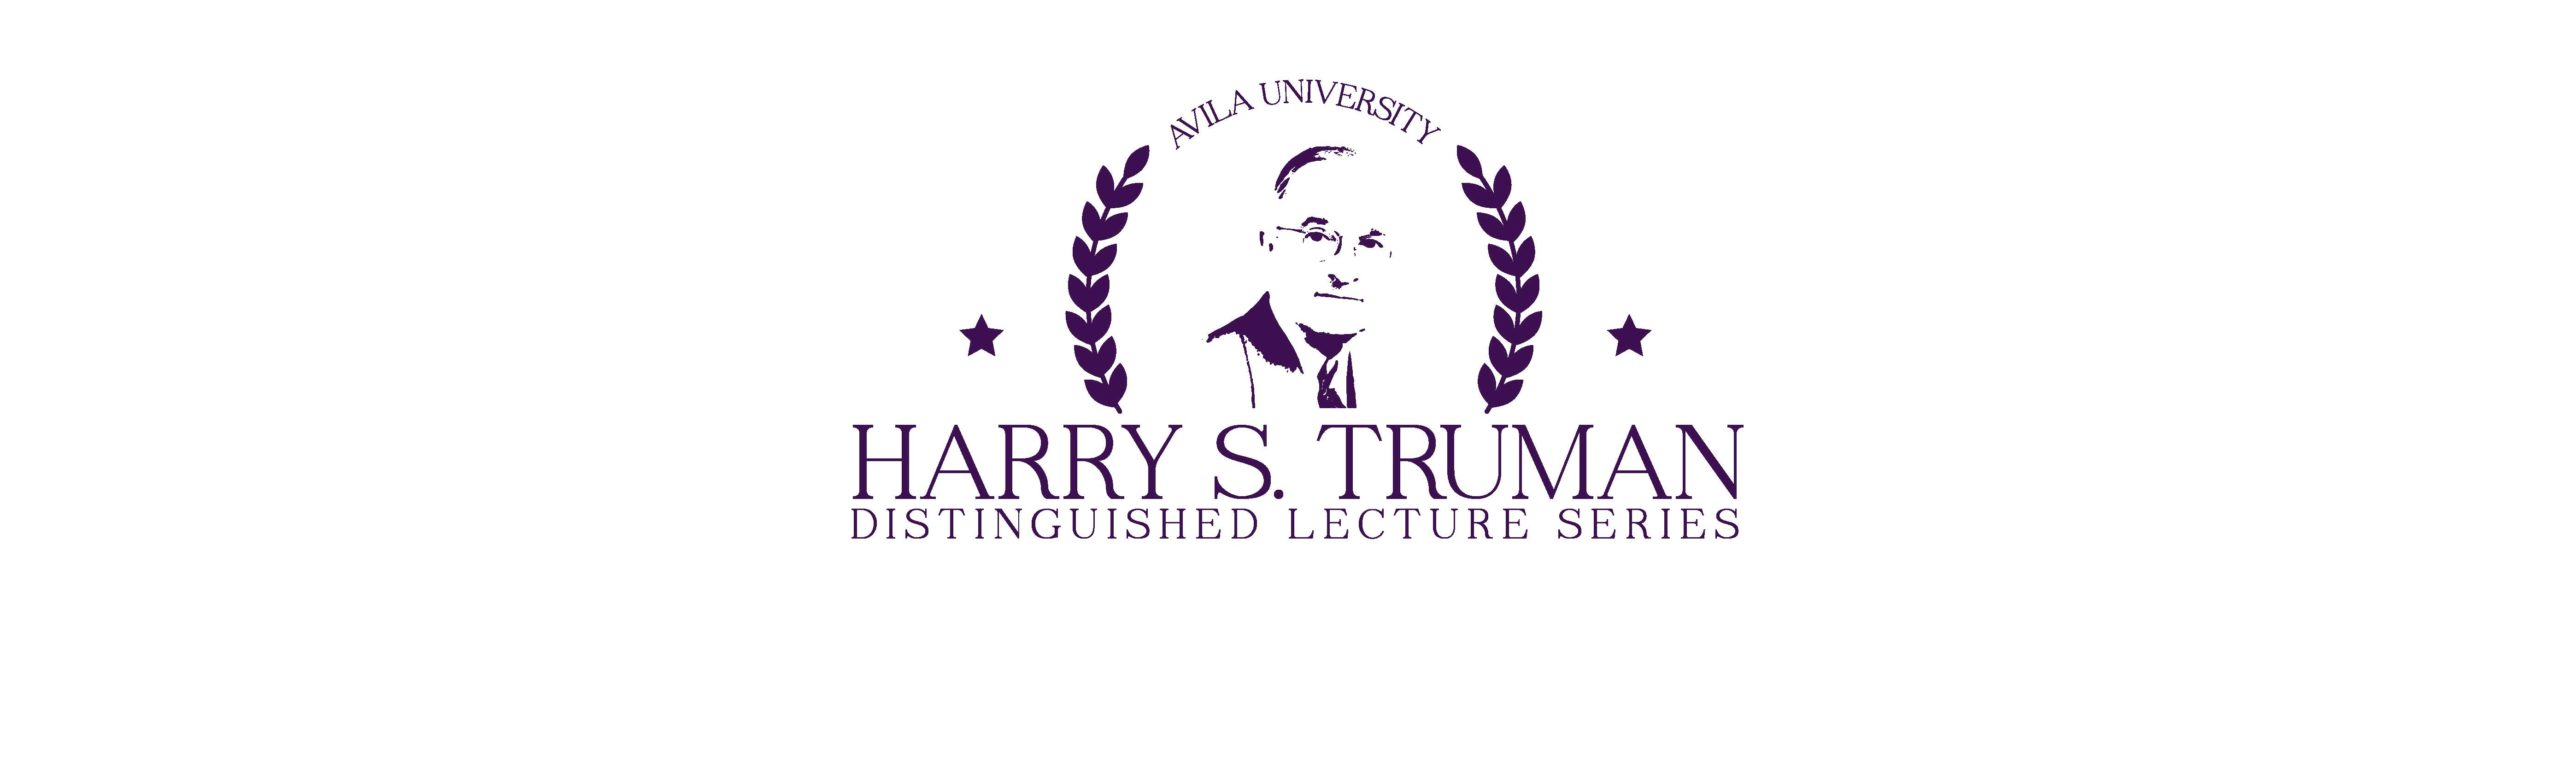 Avila University Harry S. Truman Distinguished Lecture Series Logo